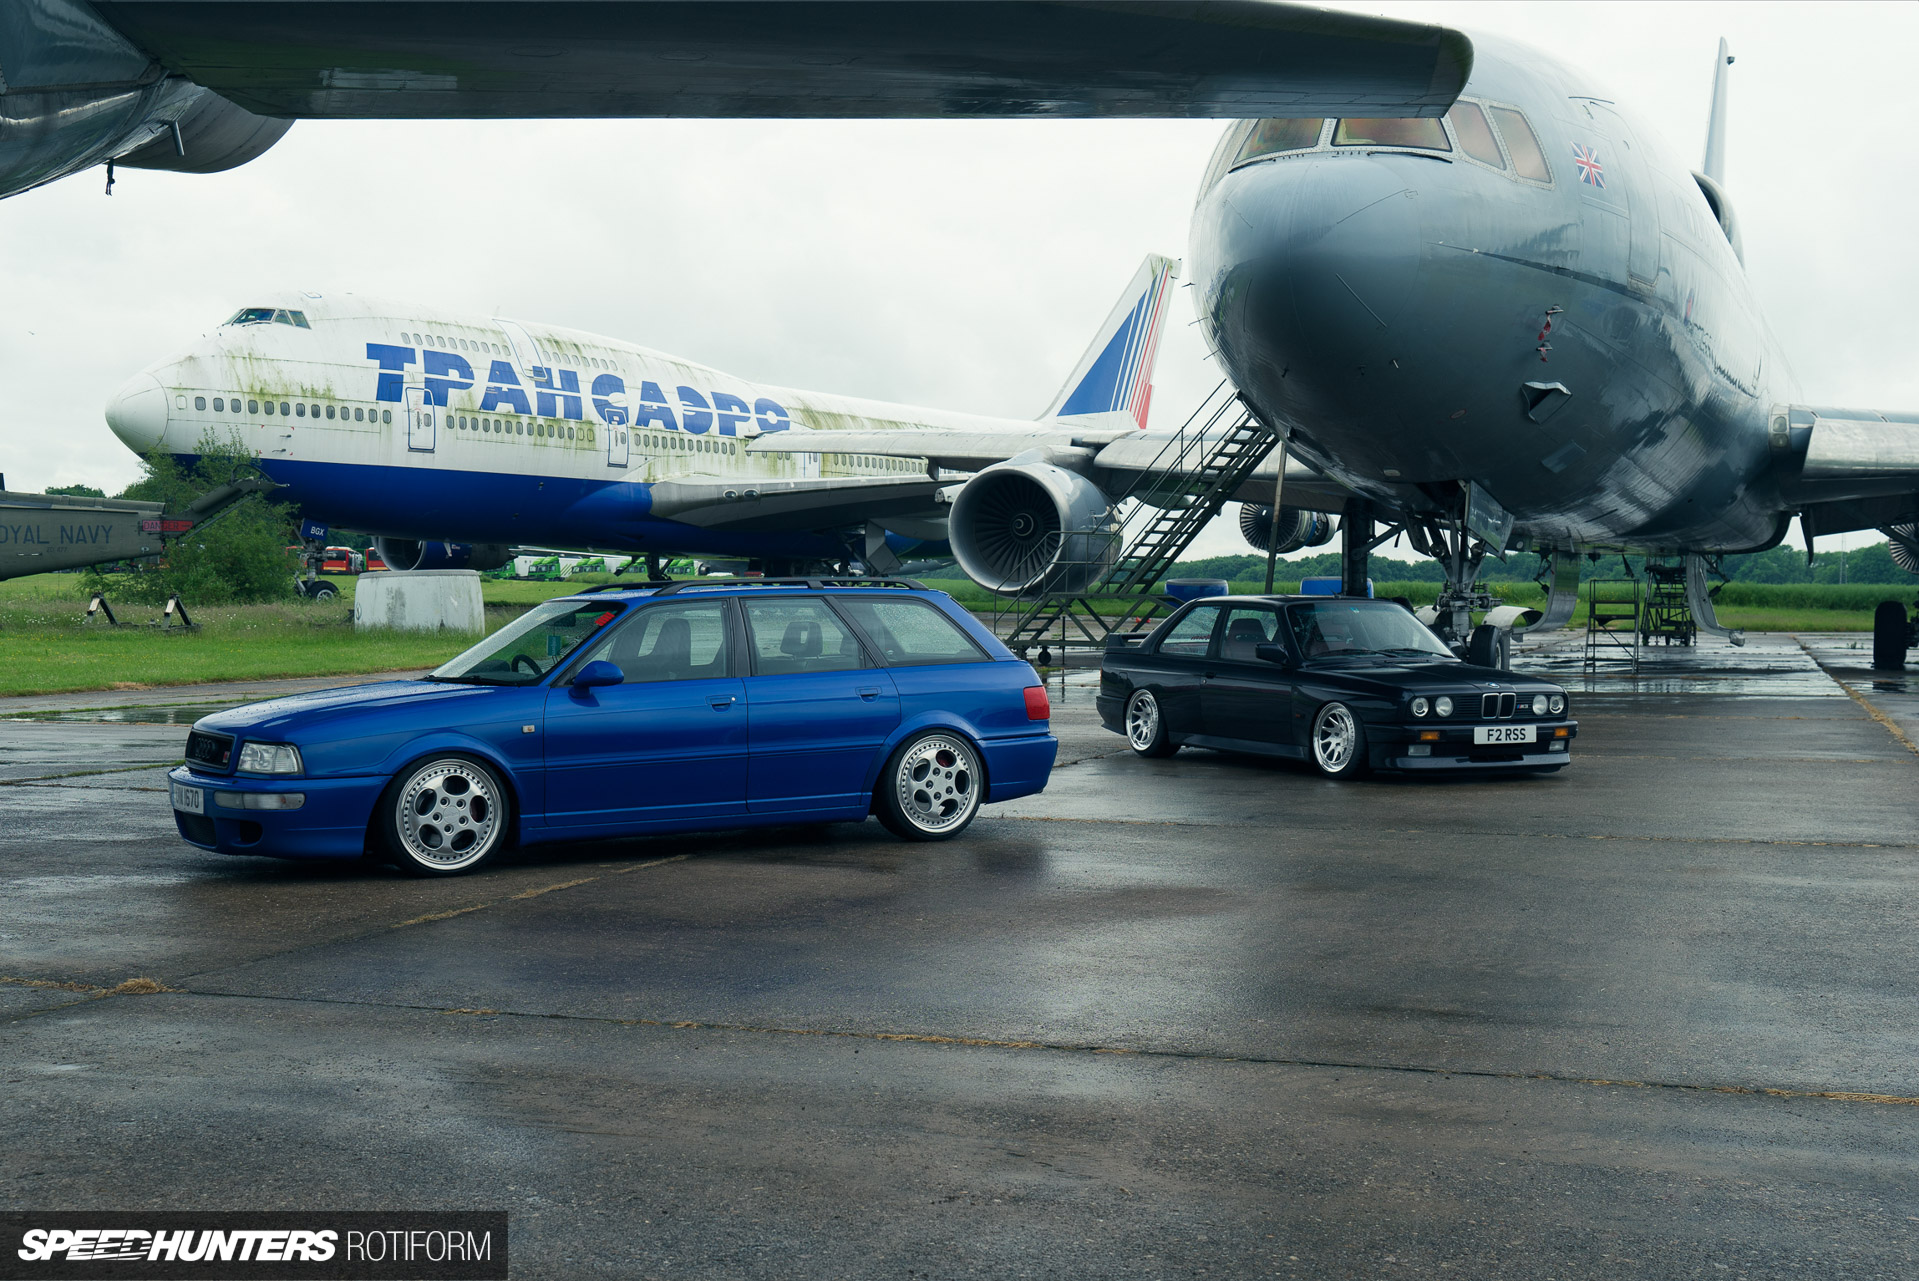 90's Legends: BMW E30 M3 Or Audi RS2?